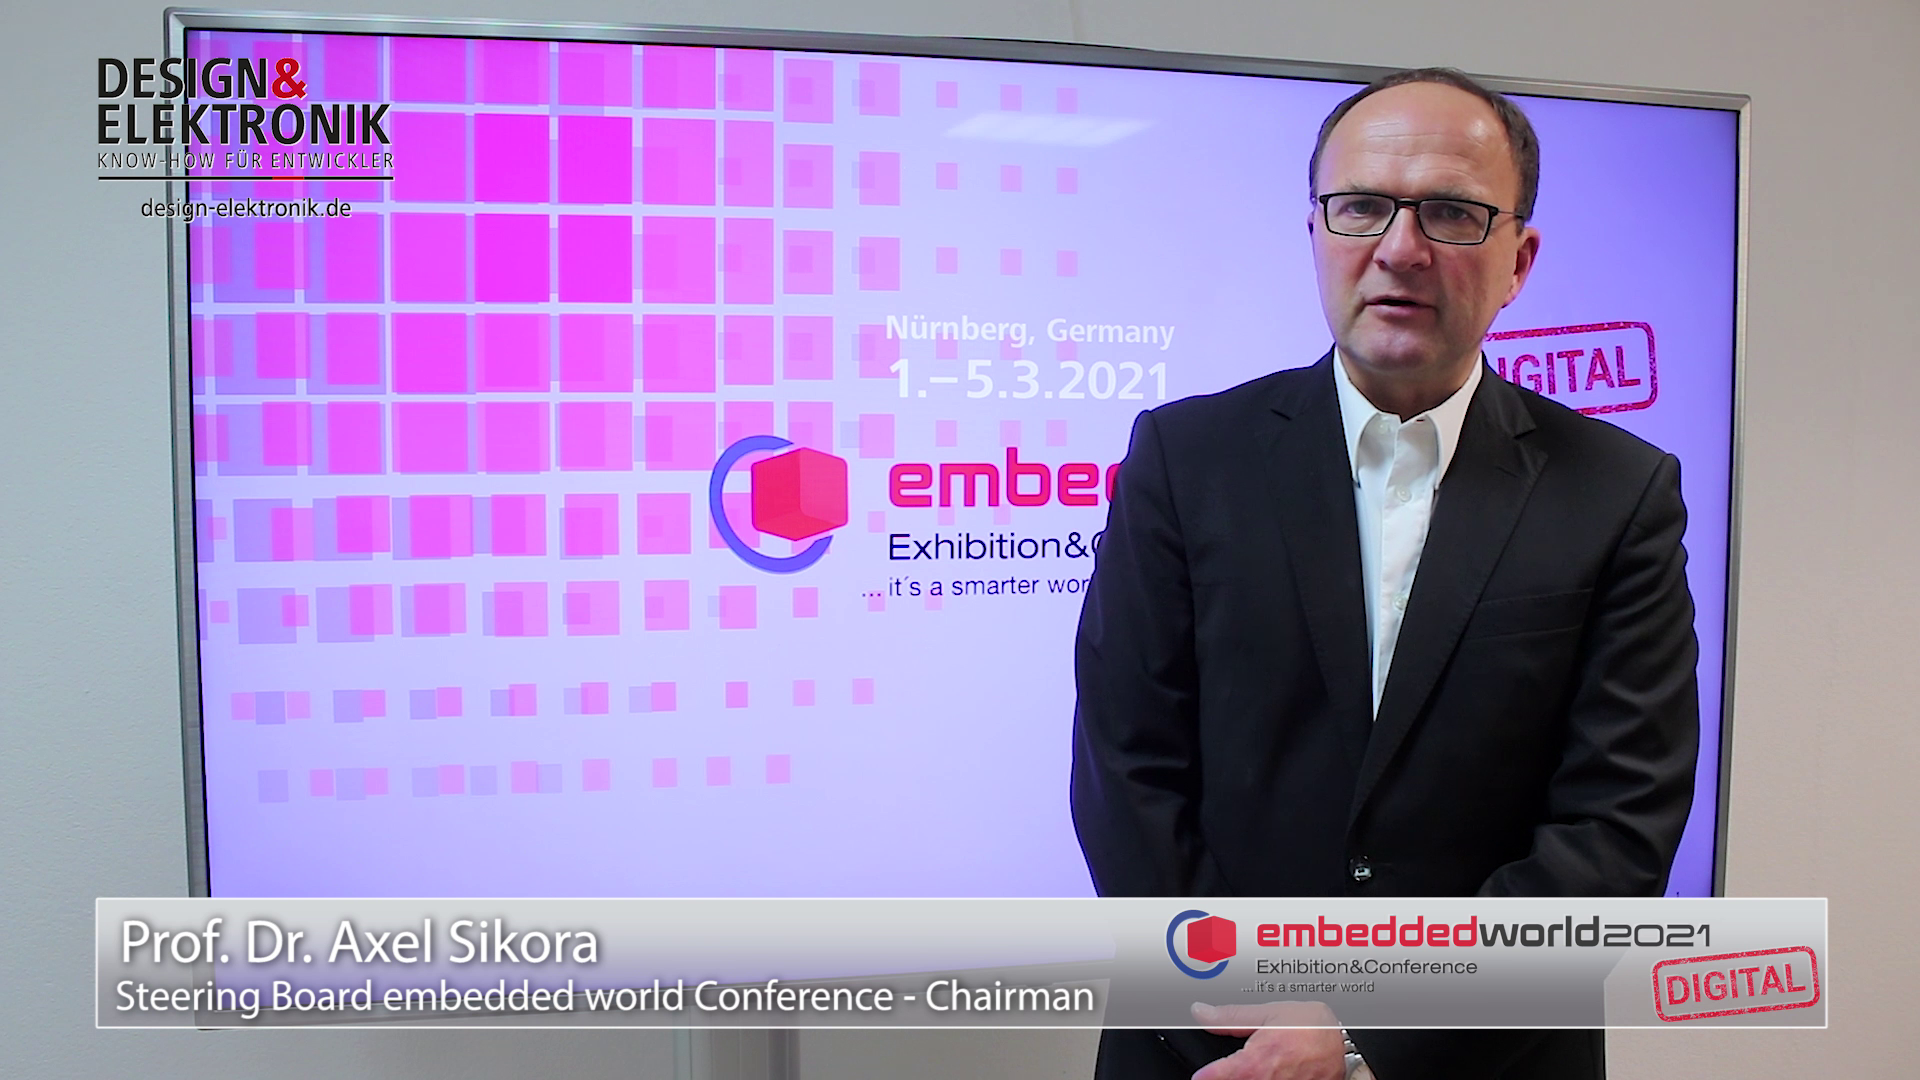 Introduction to embedded world Conference 2021 DIGITAL